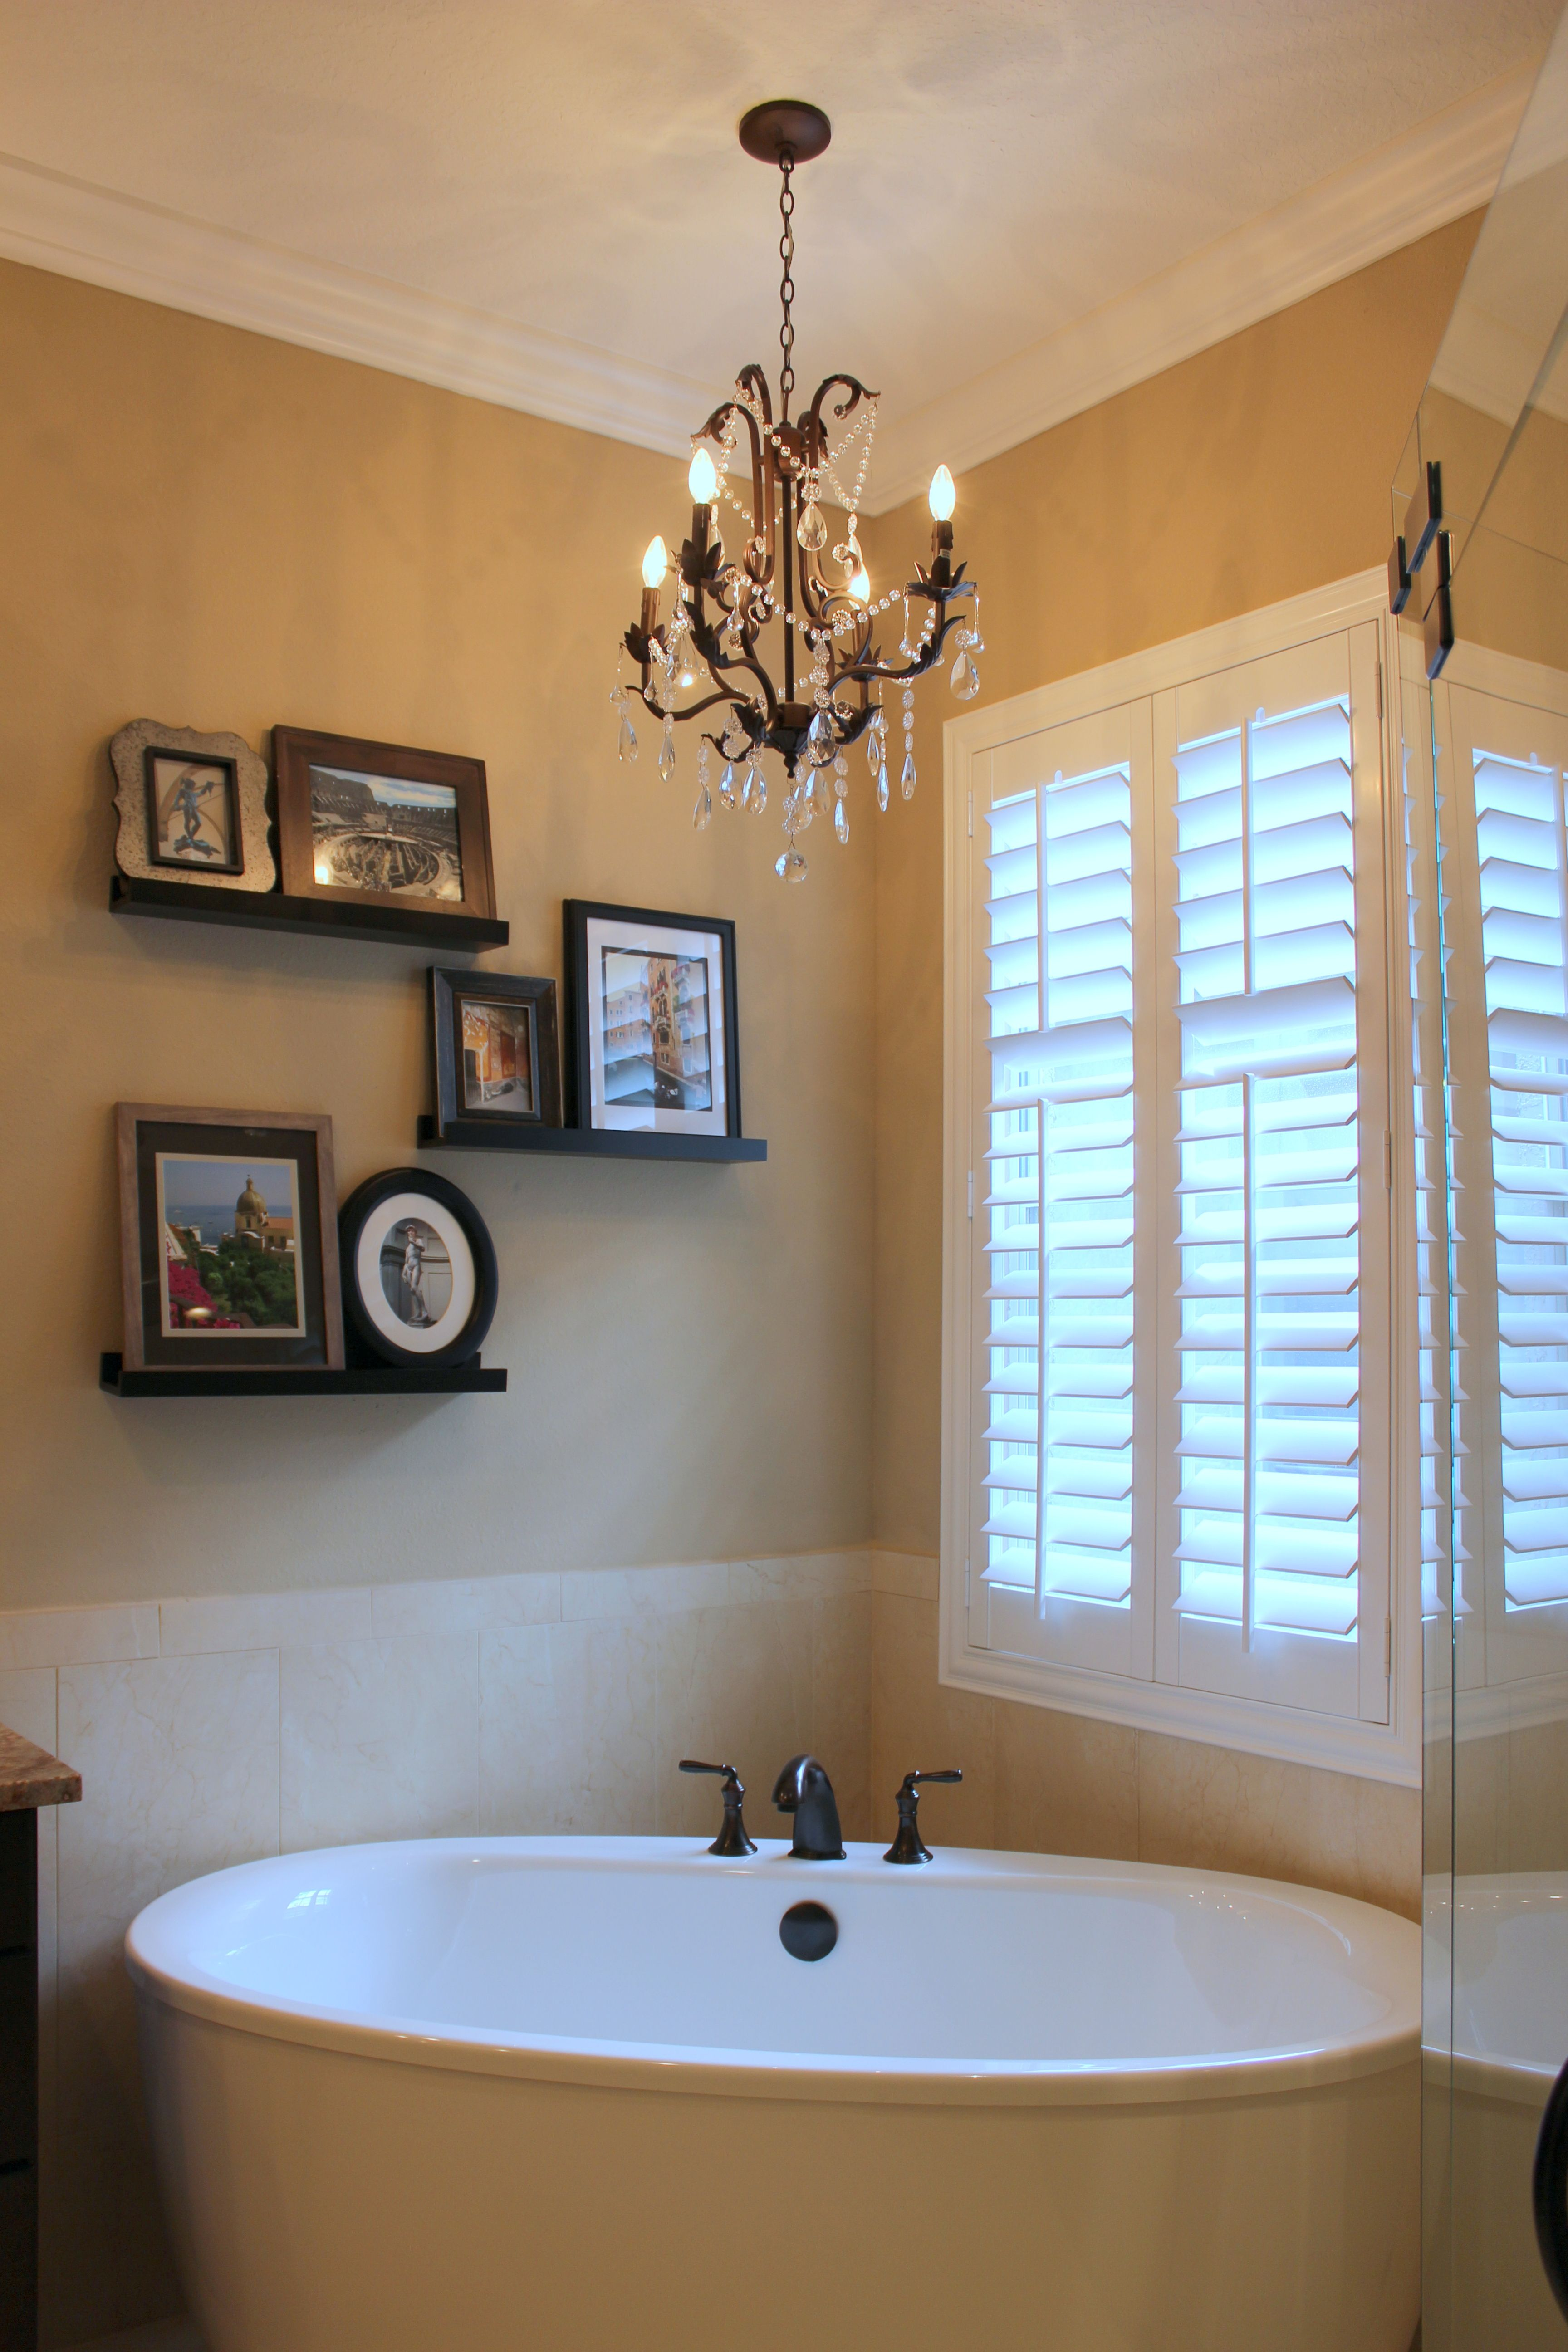 This beautiful master bathroom features a free standing Kohler